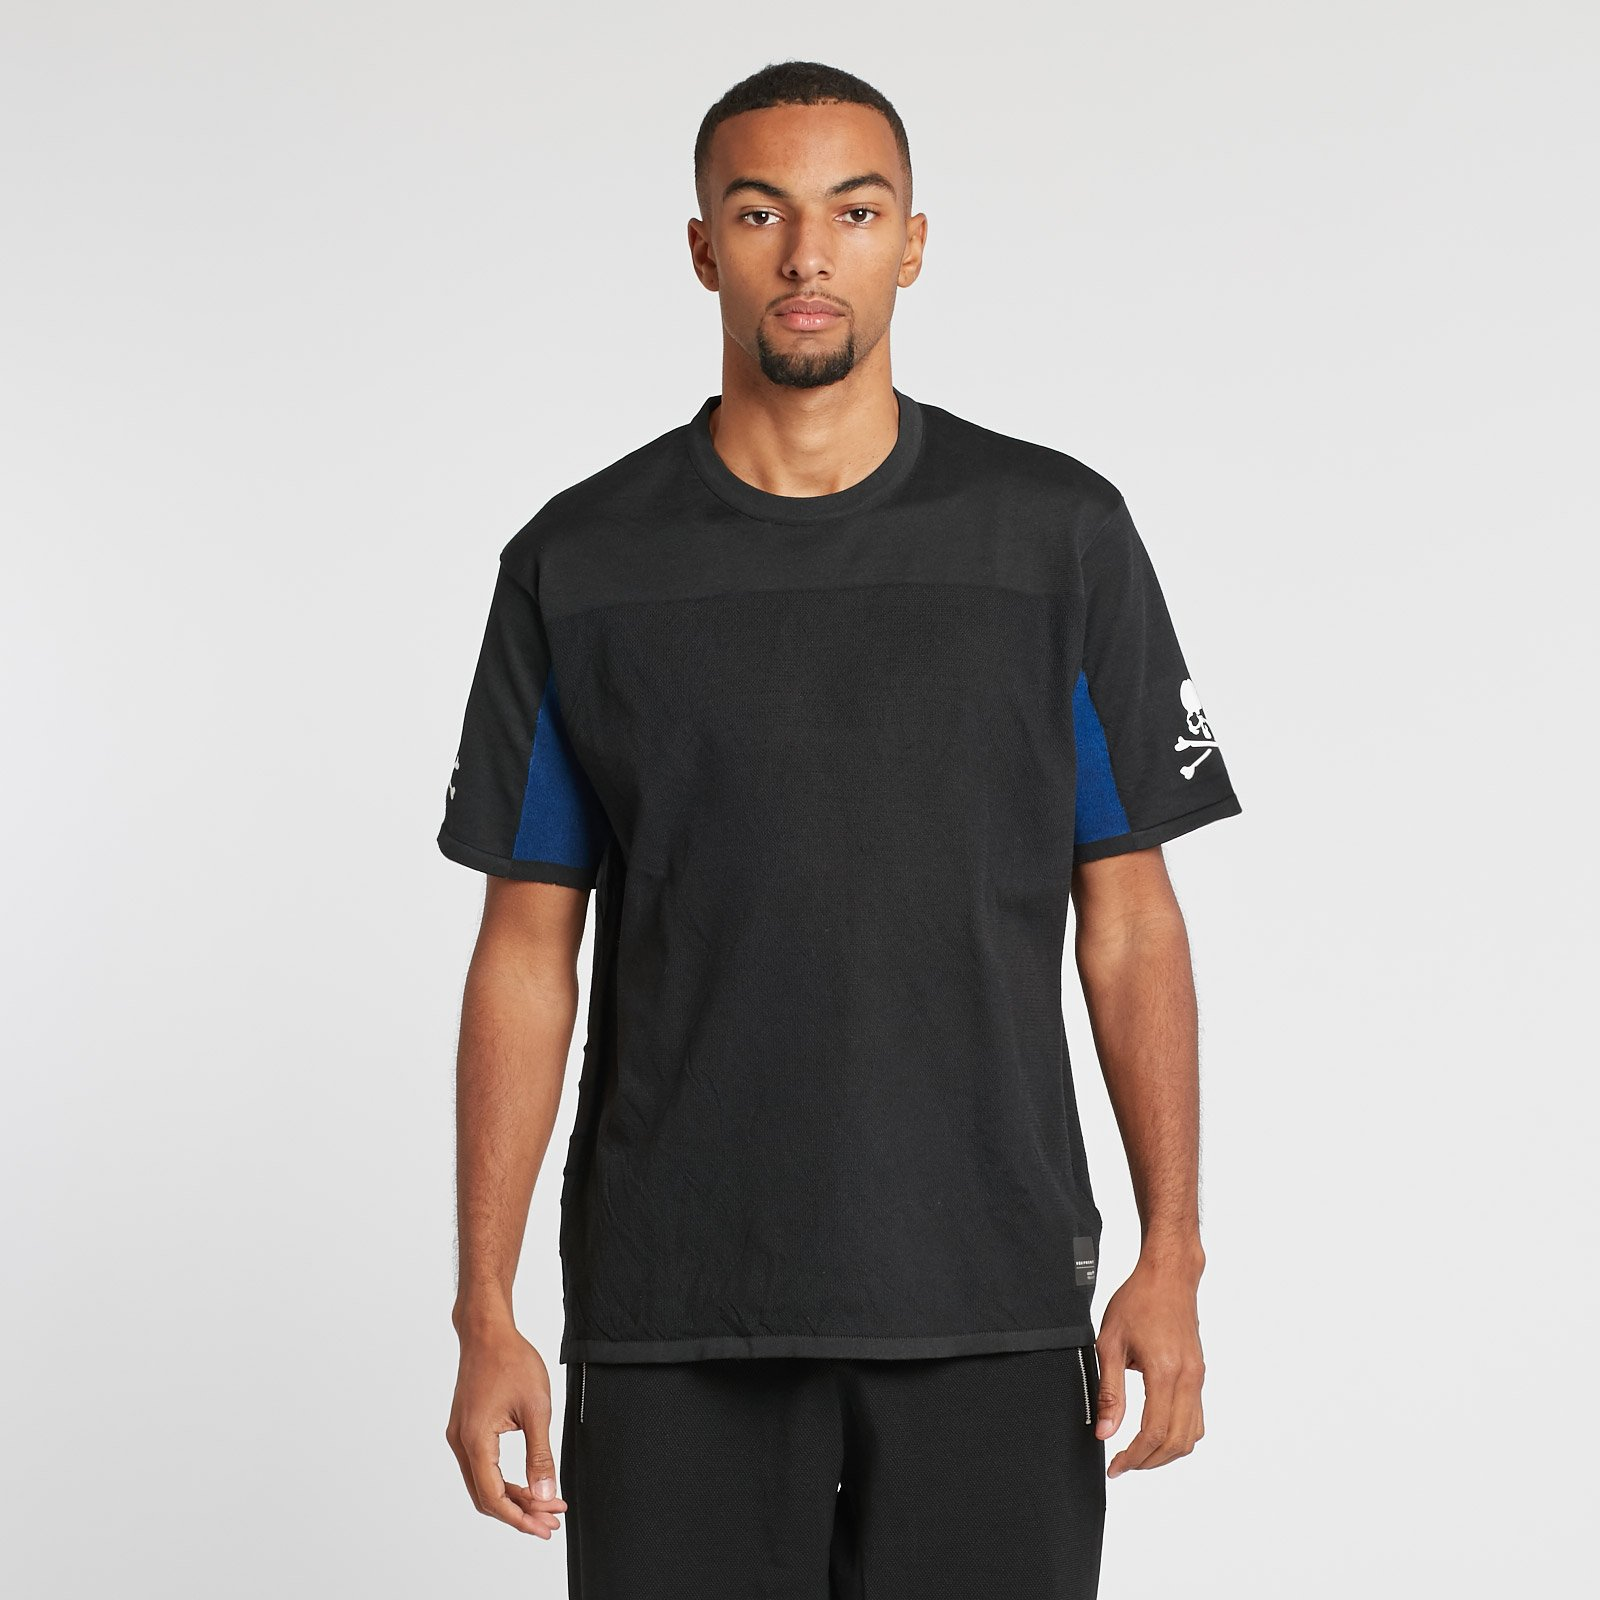 finest selection 6d209 fa2a7 adidas Originals SSL Tee by Mastermind World